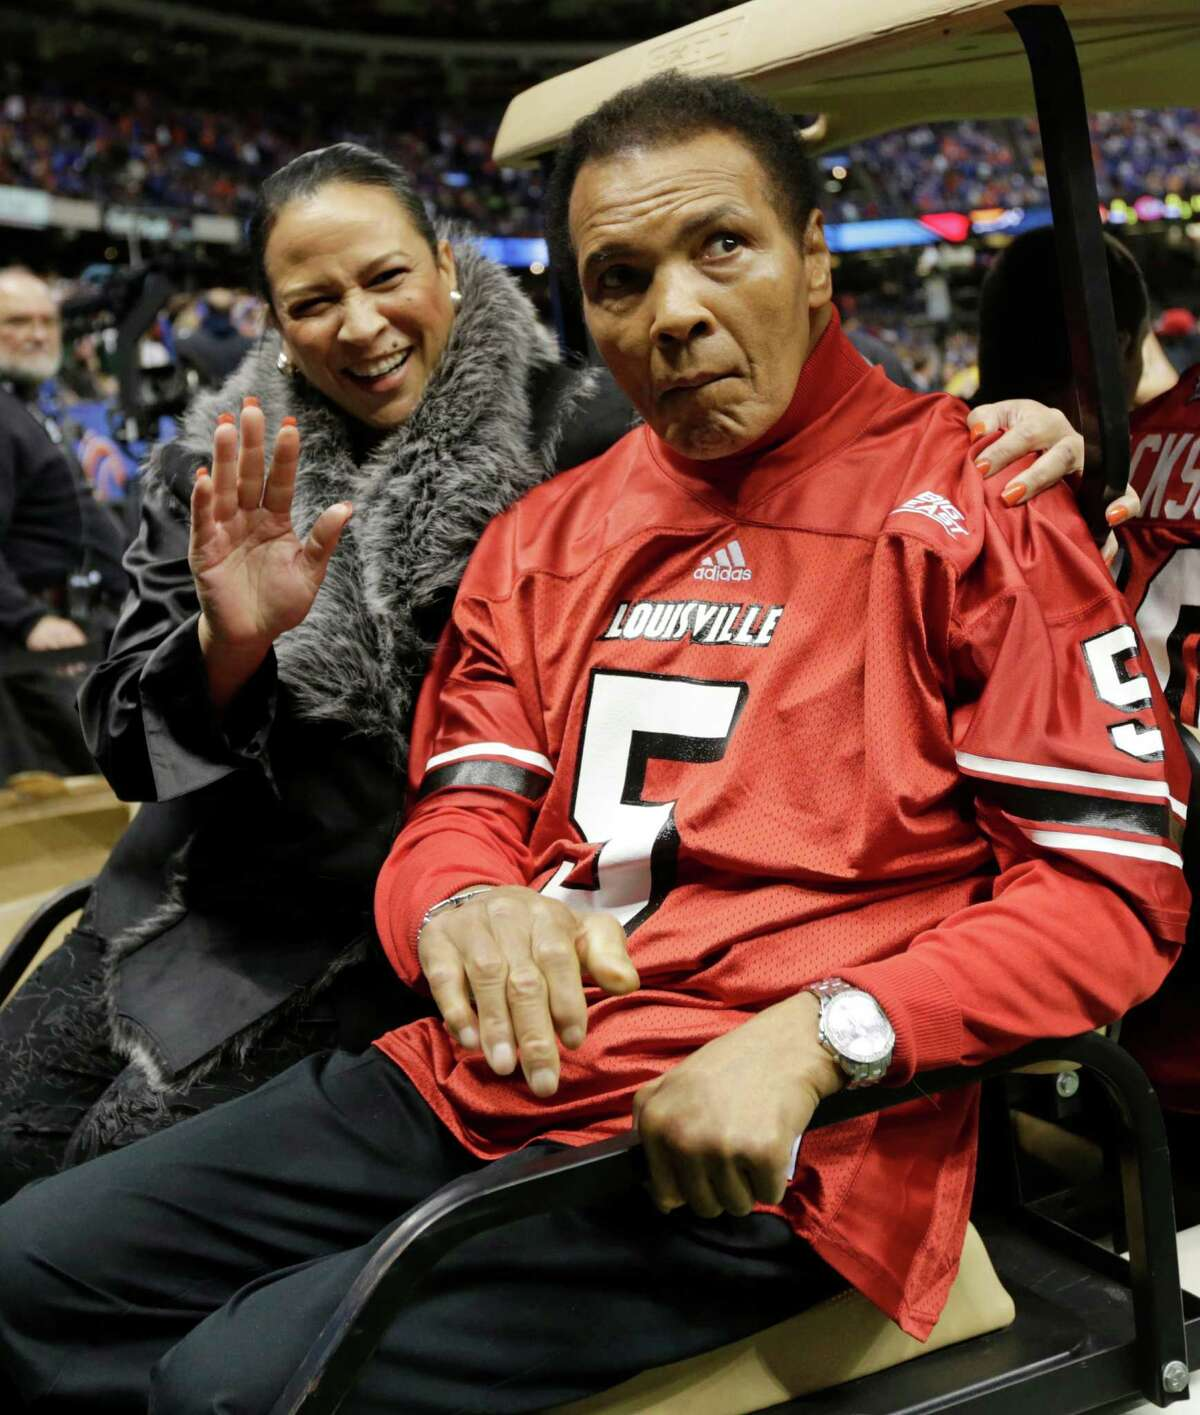 Former boxing legend Muhammad Ali arrives for the coin toss prior to the start of the Sugar Bowl NCAA college football game between Florida and Louisville on Wednesday, Jan. 2, 2013, in New Orleans. (AP Photo/Dave Martin)